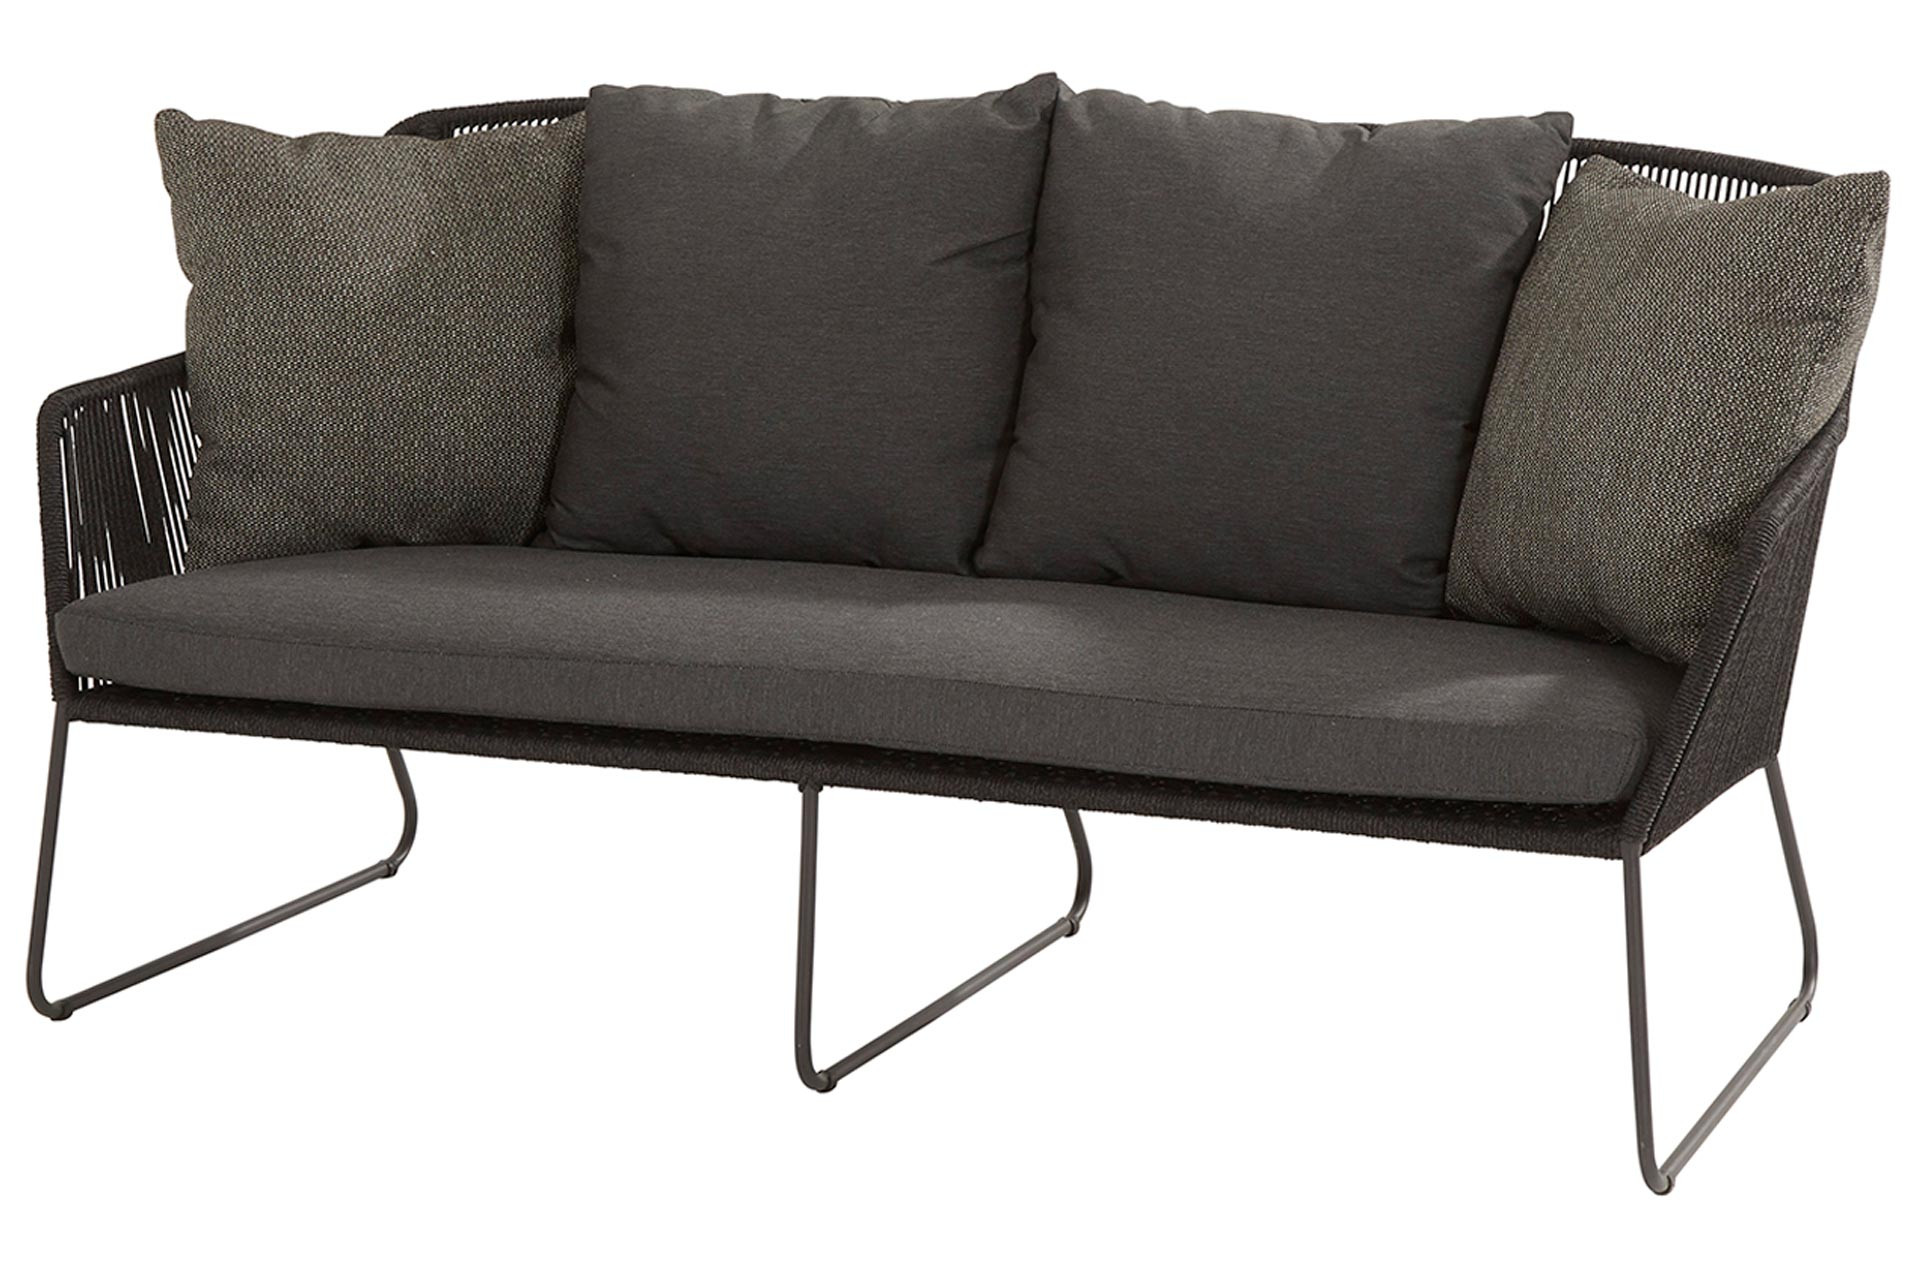 Accor living bench with 5 cushions